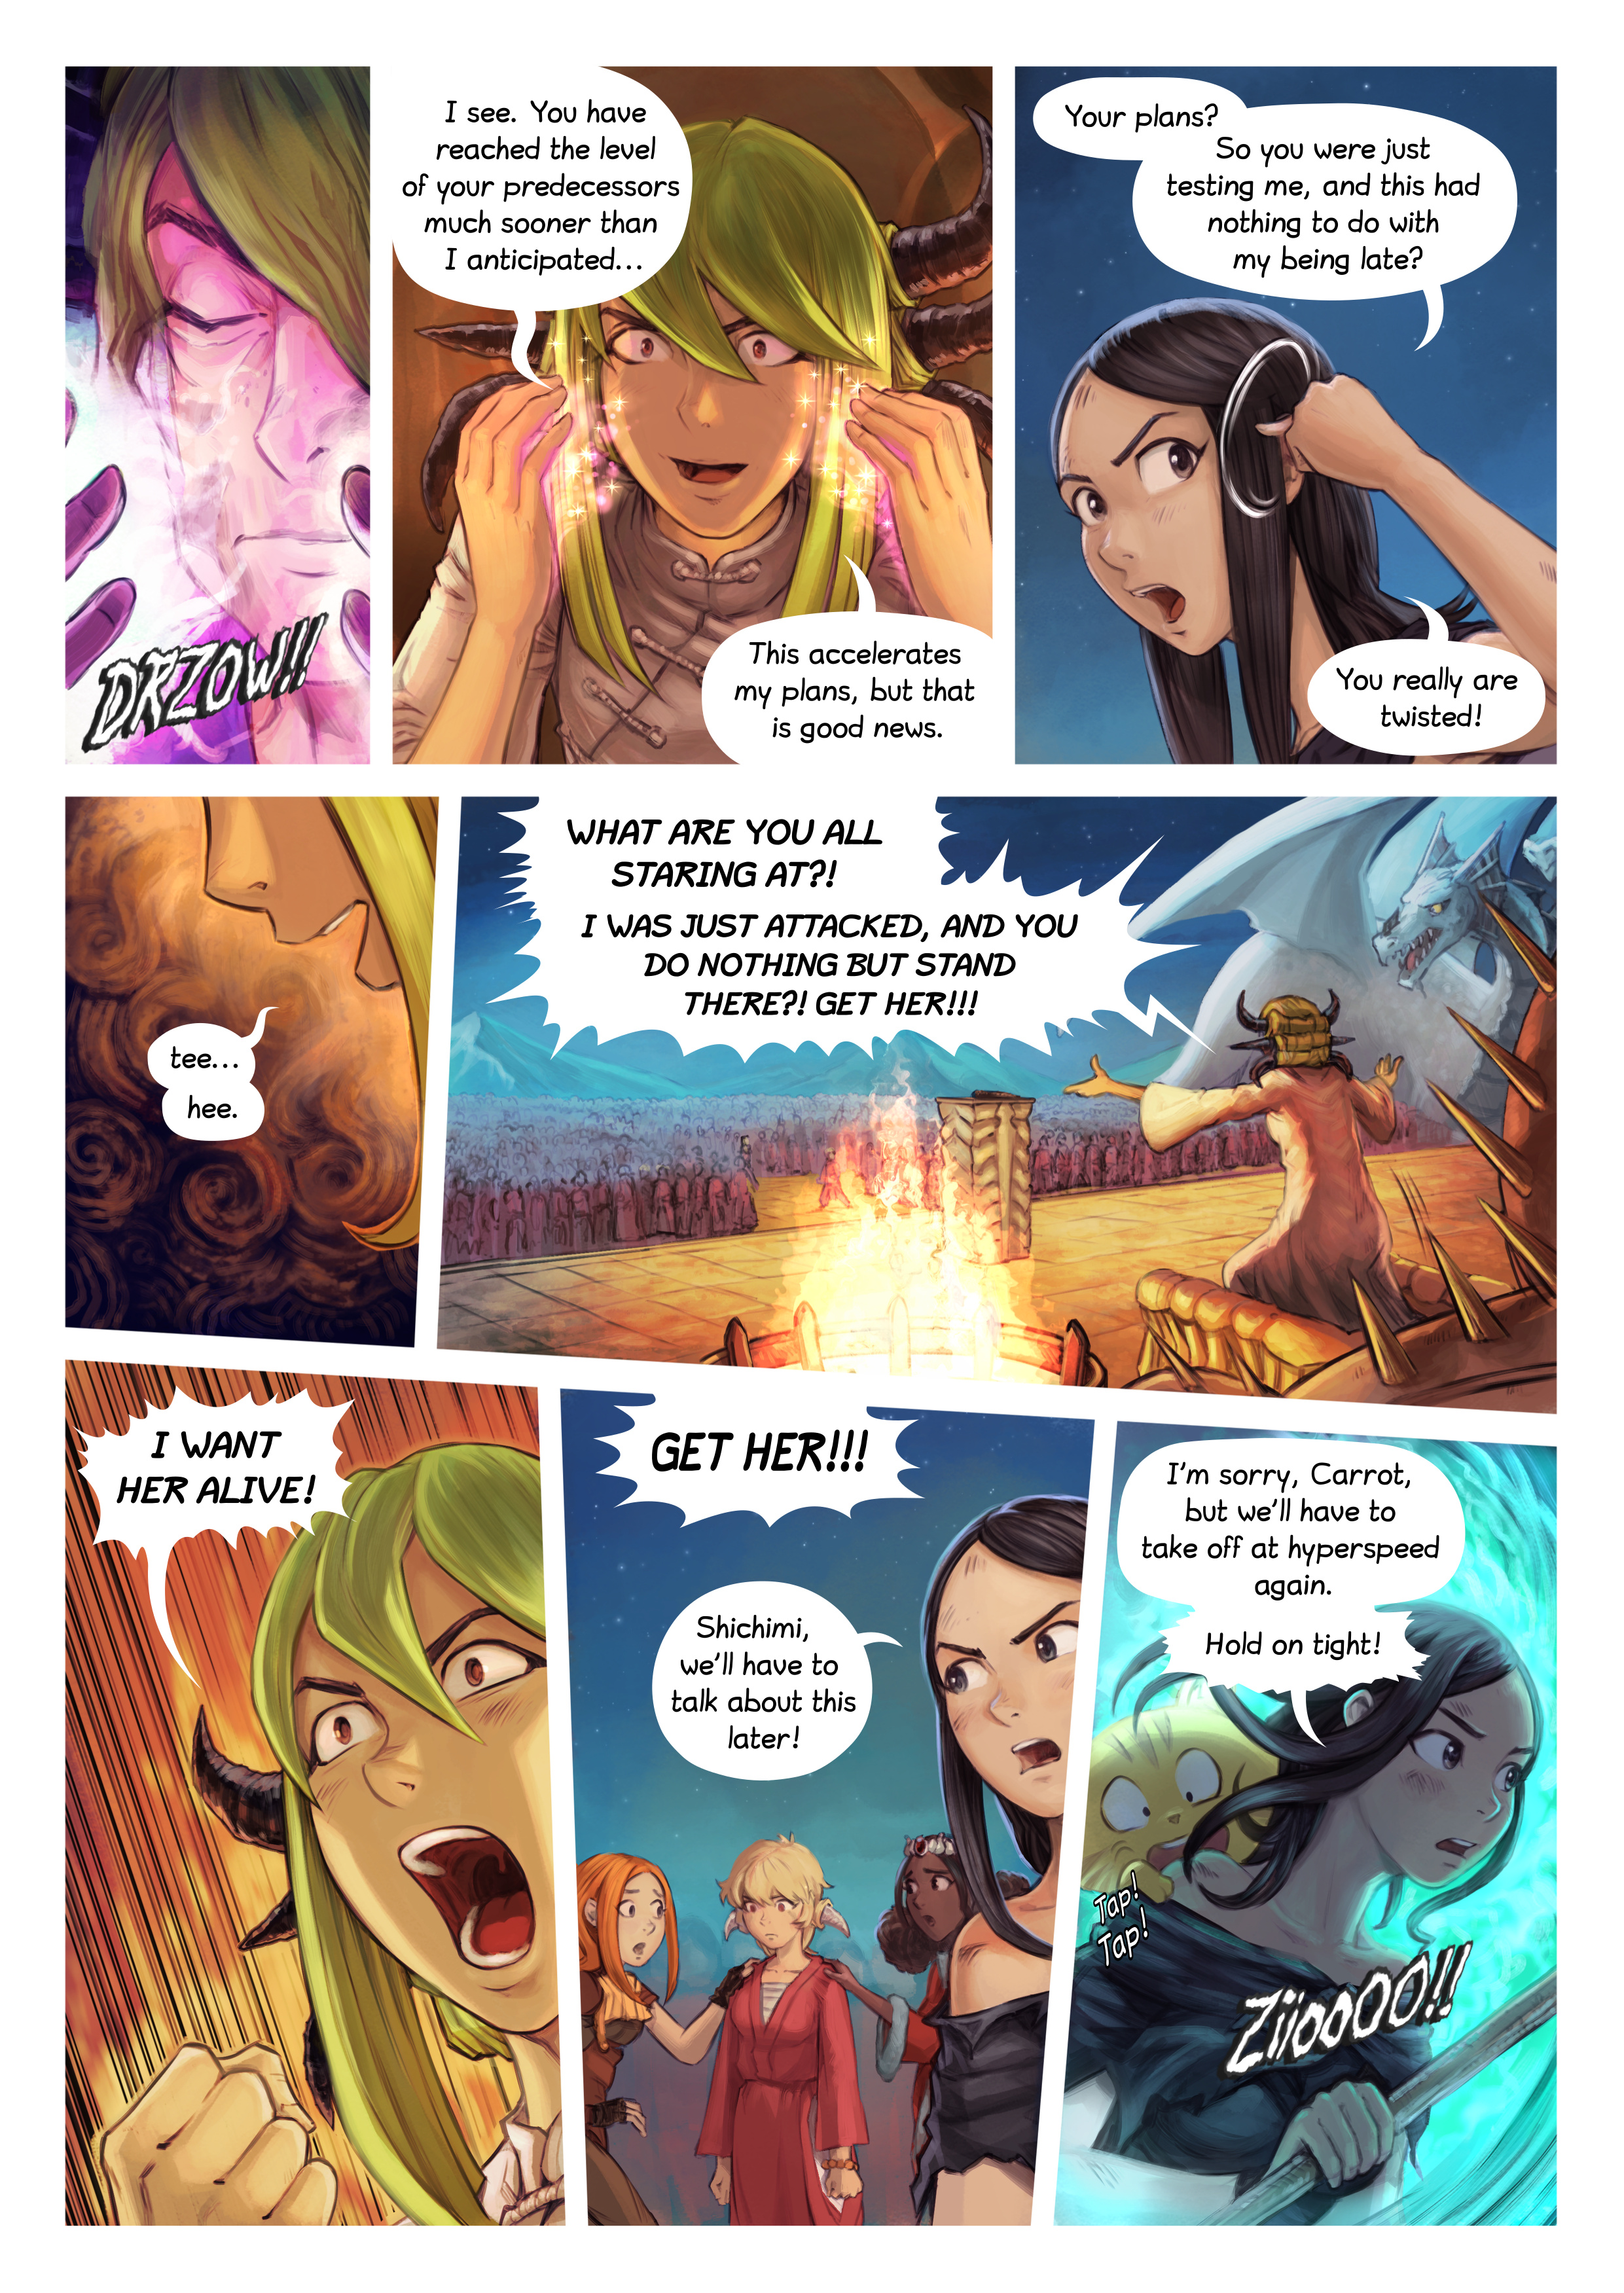 Episode 34: The Knighting of Shichimi, Page 9